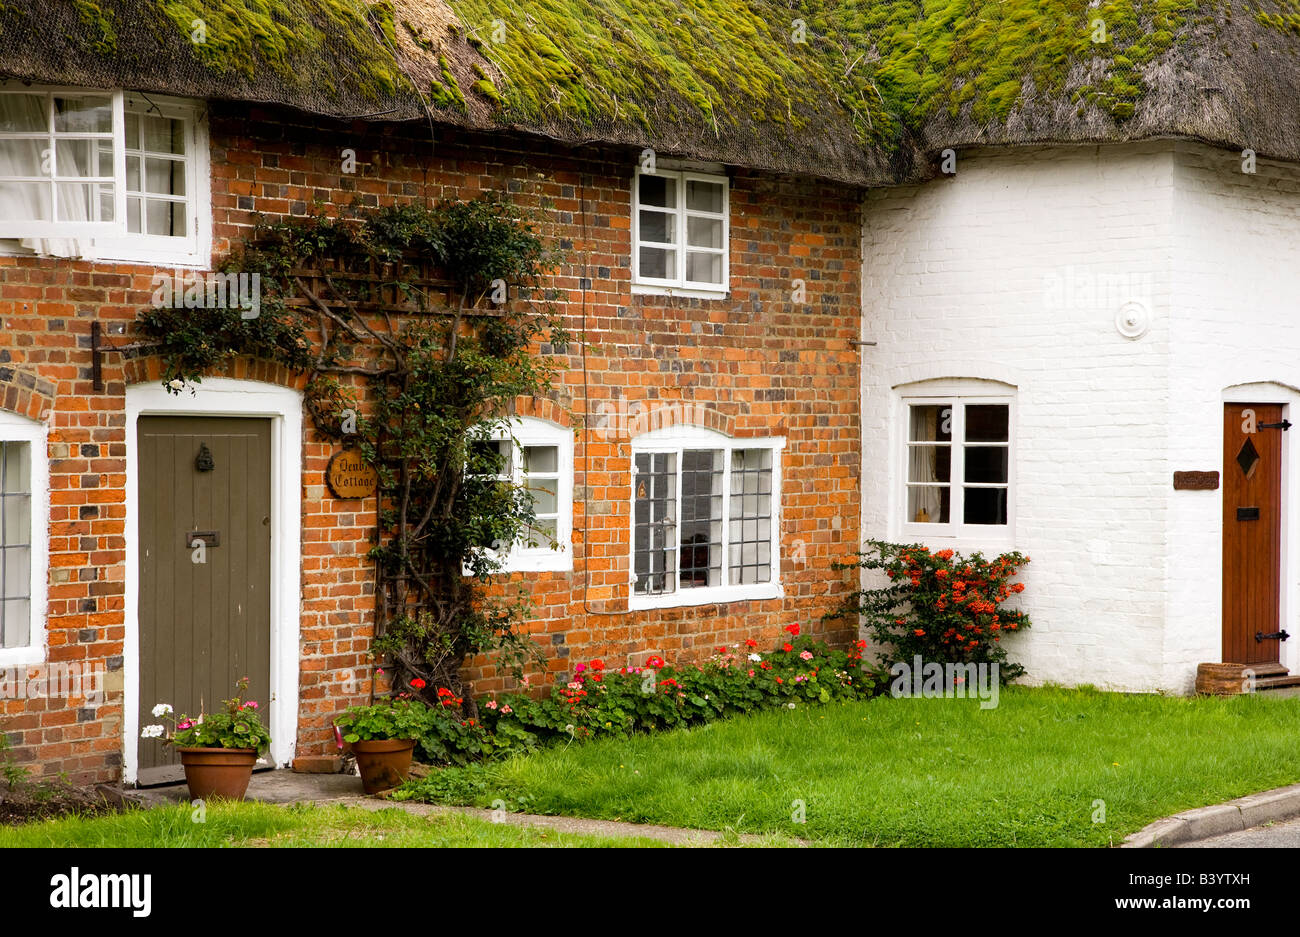 Typical thatched country village cottage in rural Little Bedwyn,  Wiltshire, England, UK - Stock Image